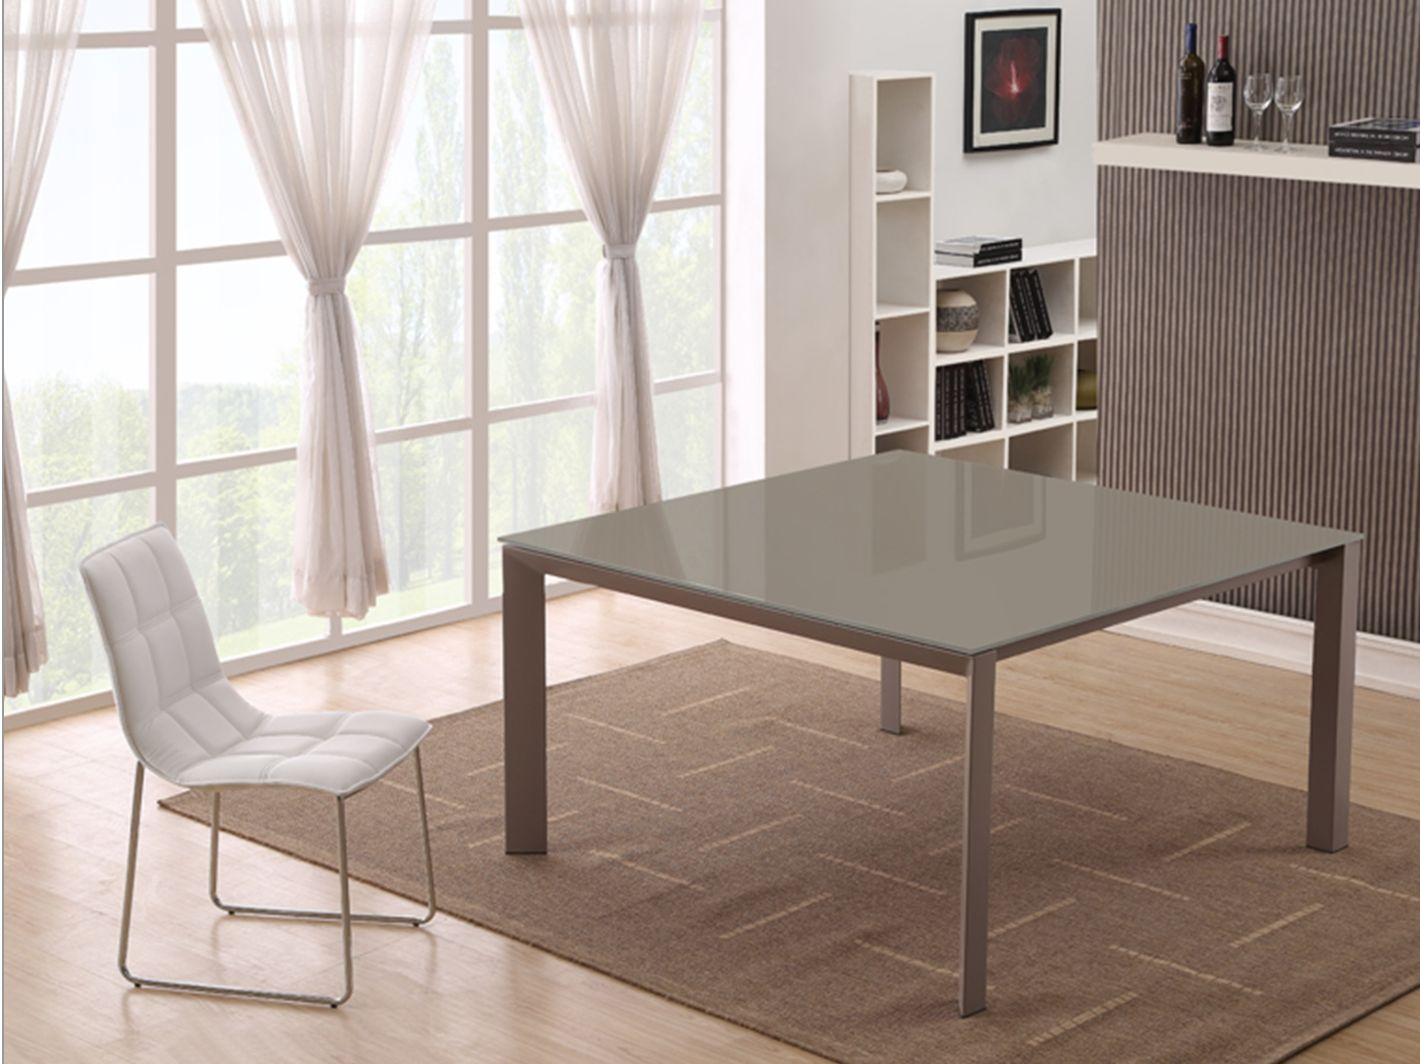 Napoli 55 Square Dining Tables Glass Dining Table Dining Table